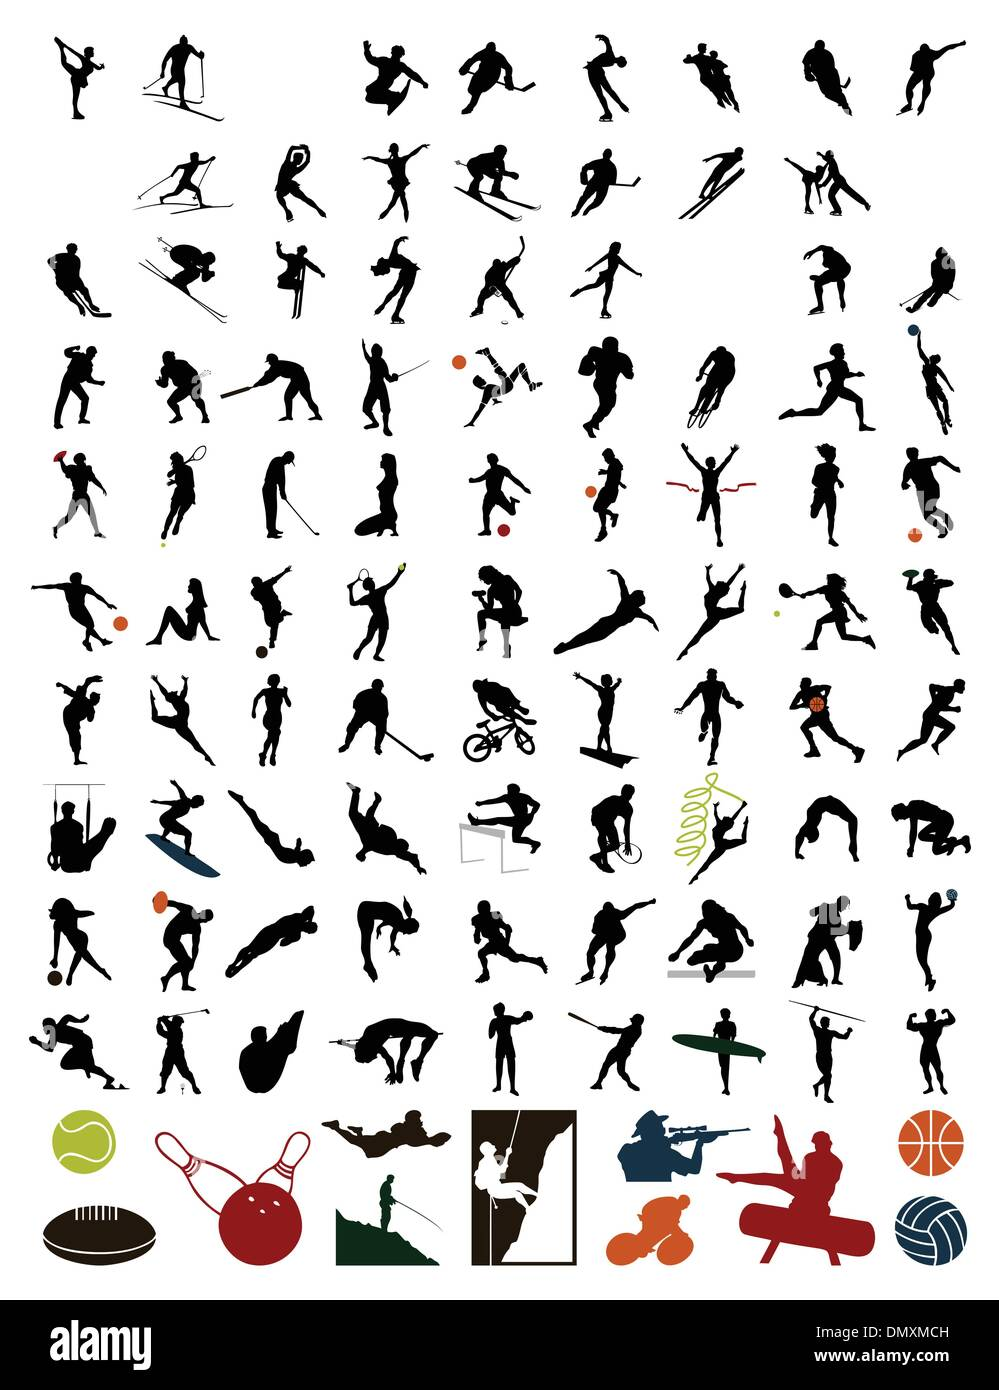 Collection of silhouettes of sportsmen - Stock Vector